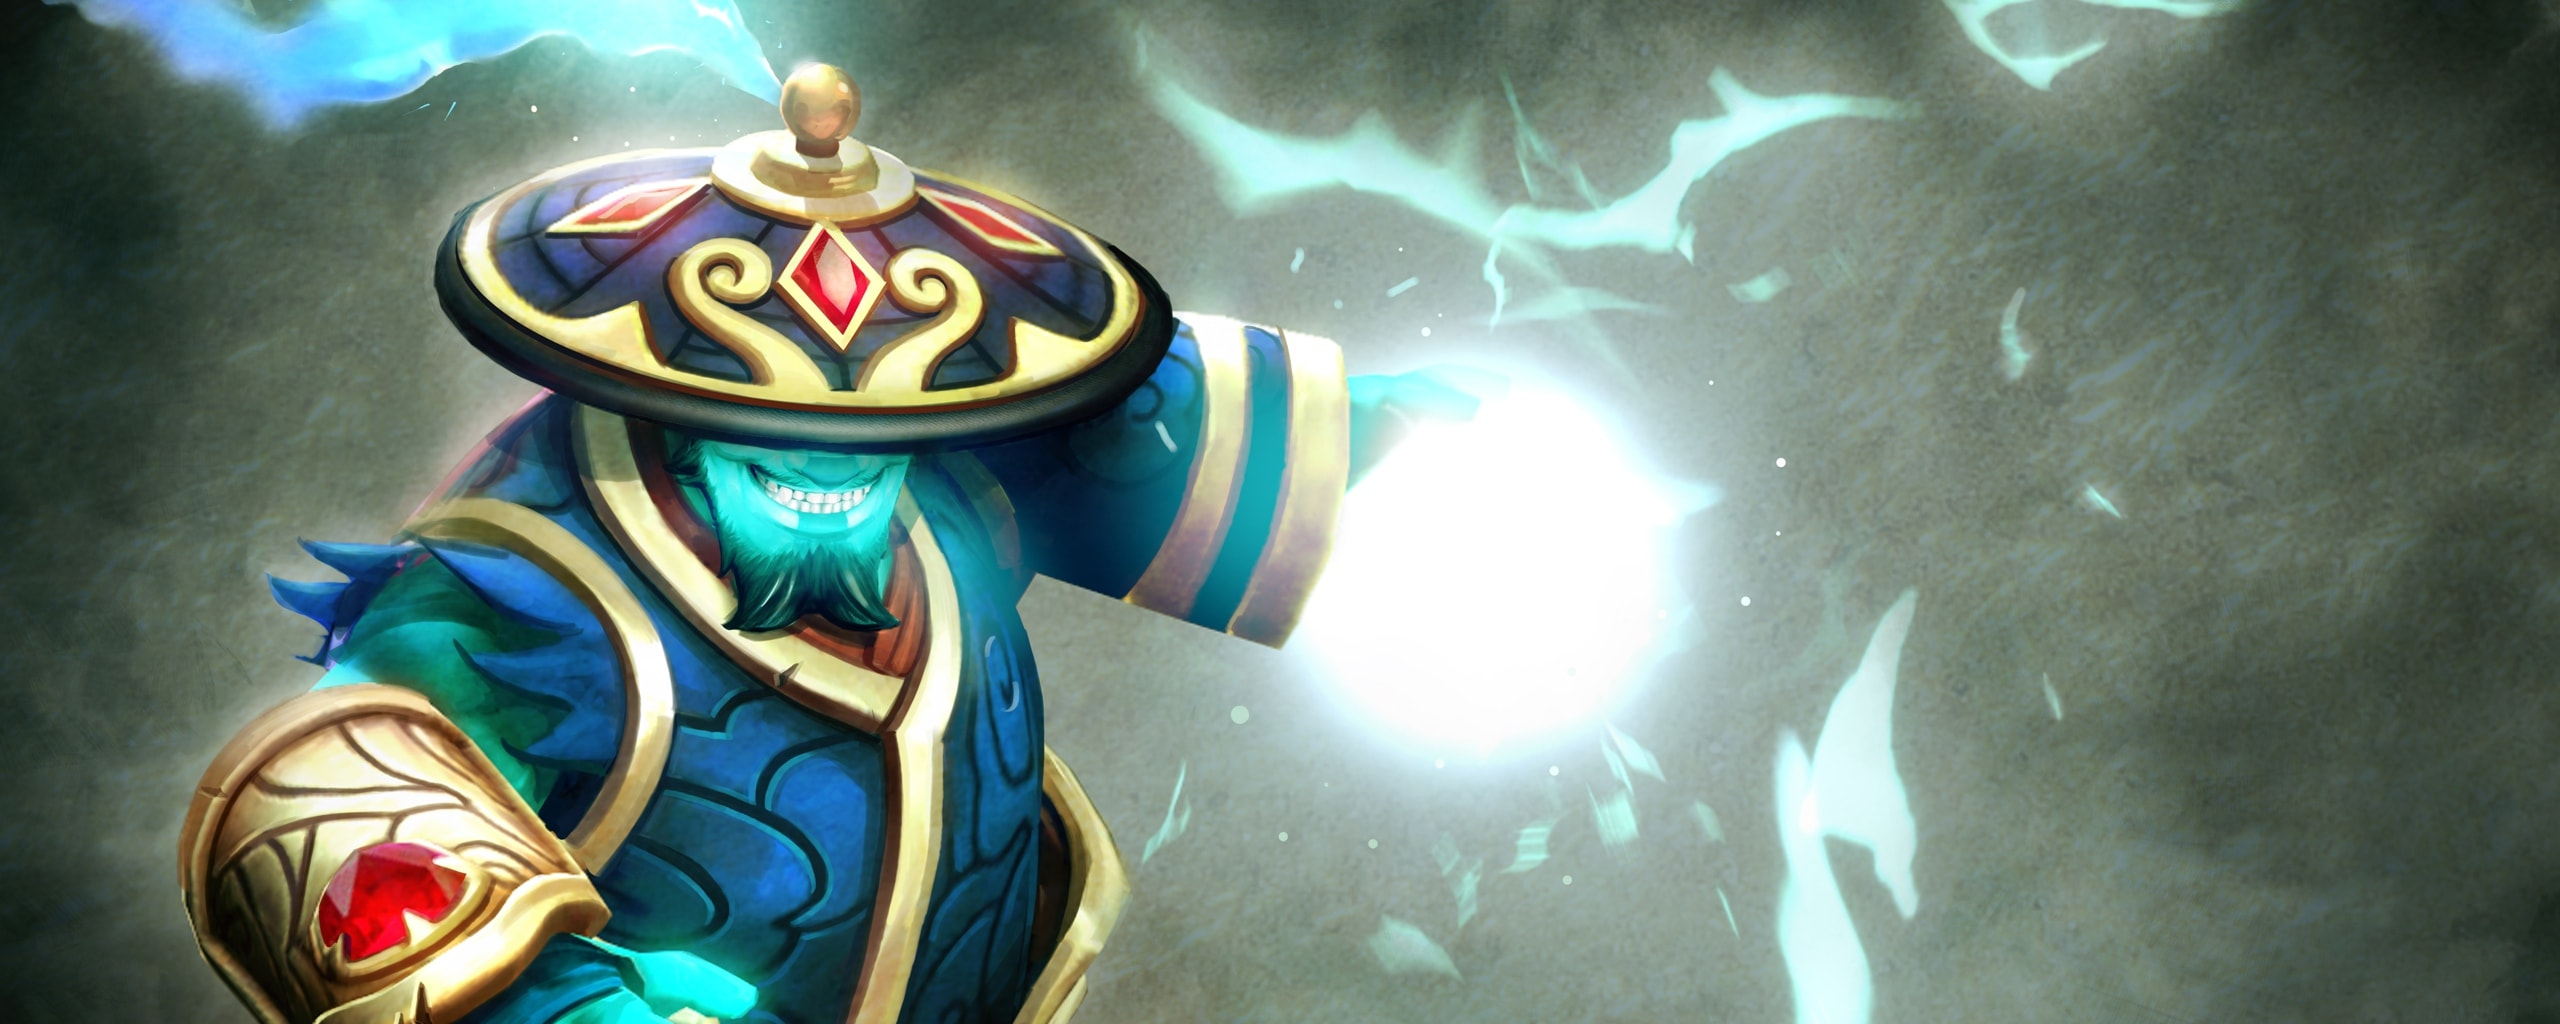 Dota2 : Storm Spirit Wallpapers hd